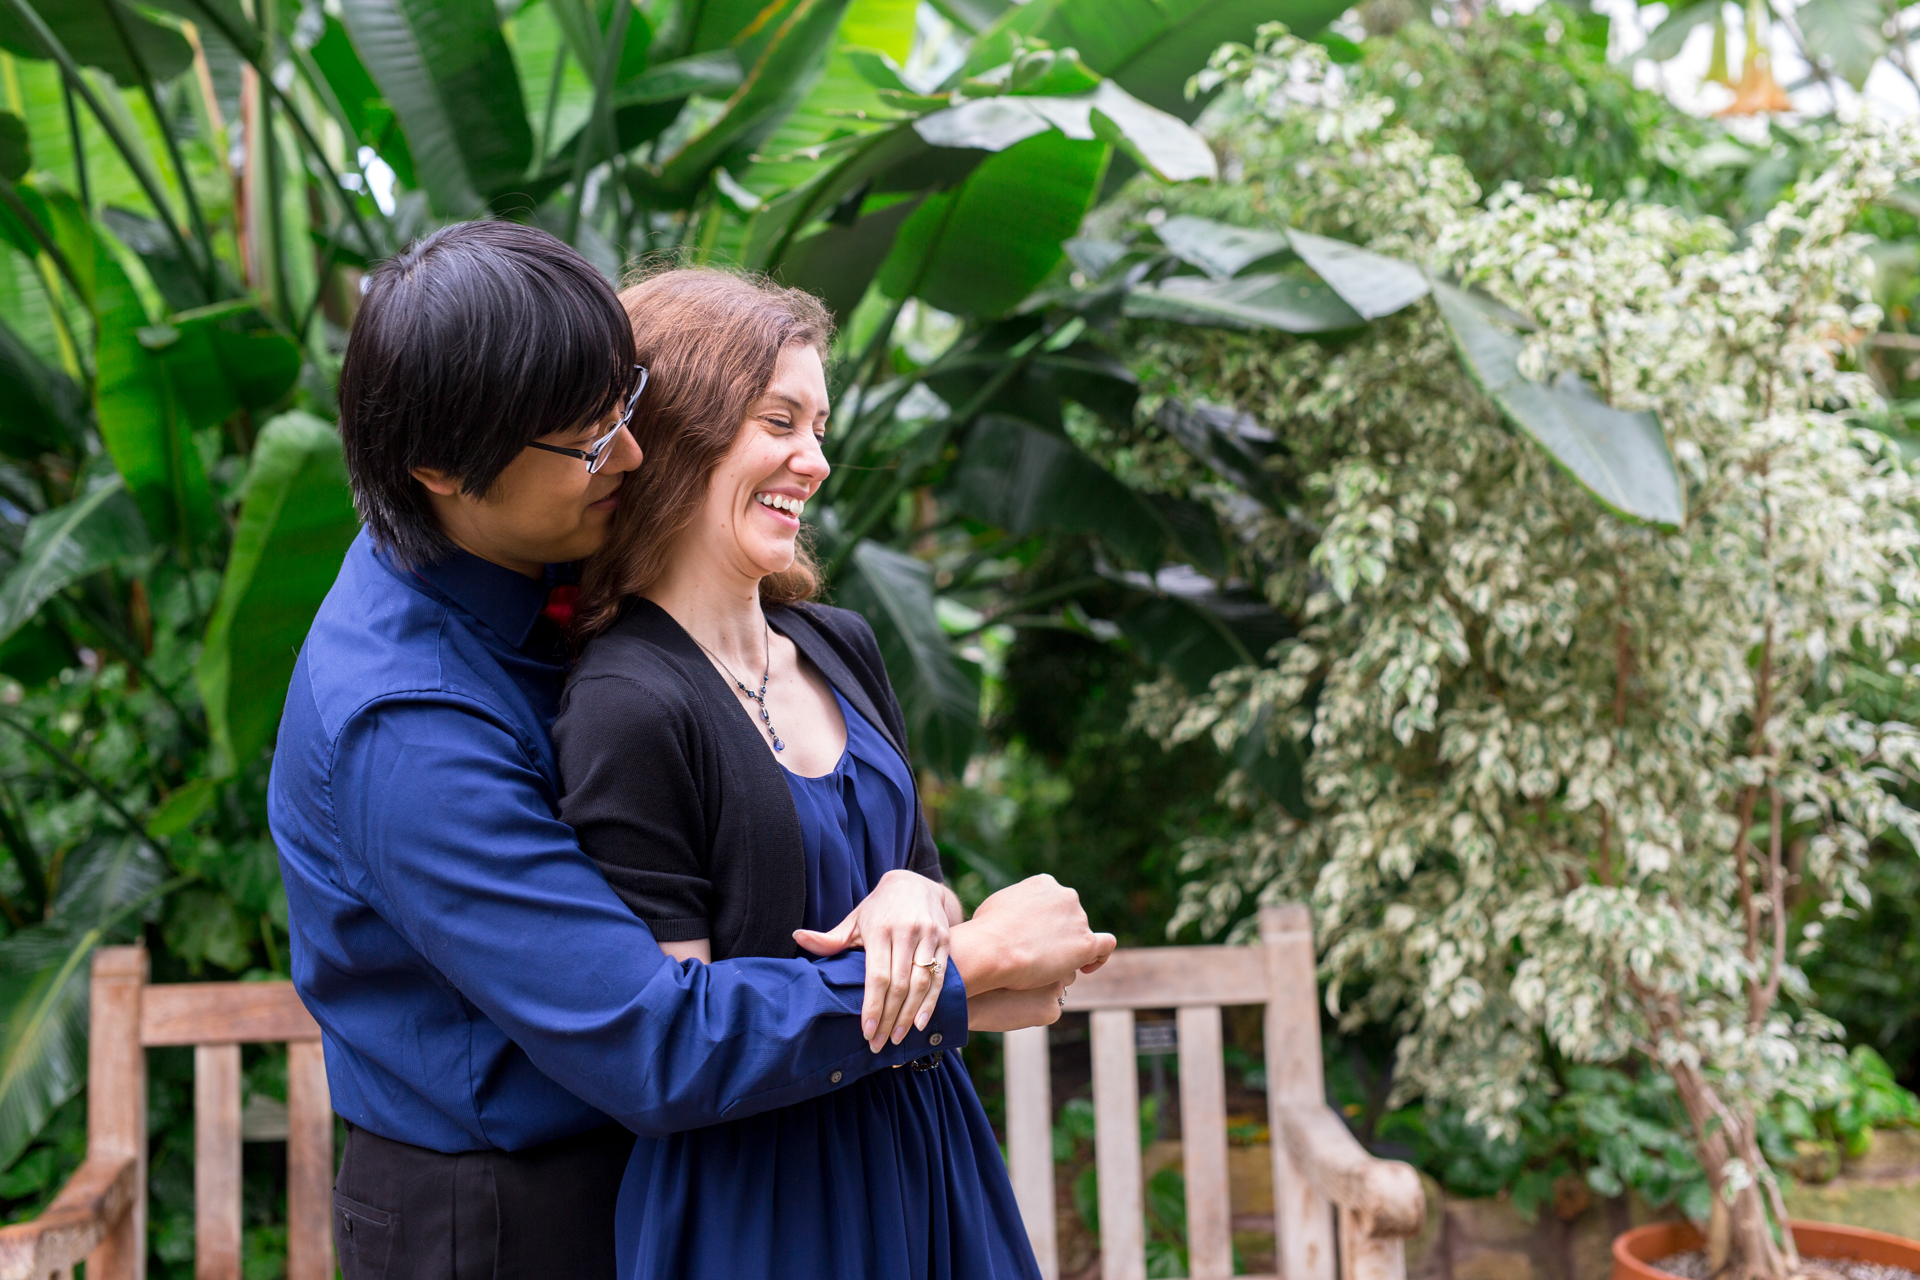 luthy botanical gardens greenhouse engagement biracial couple peoria centrail illinois wedding photographer photographers bloomington normal illinois valley lasalle peru ottawa-21.jpg